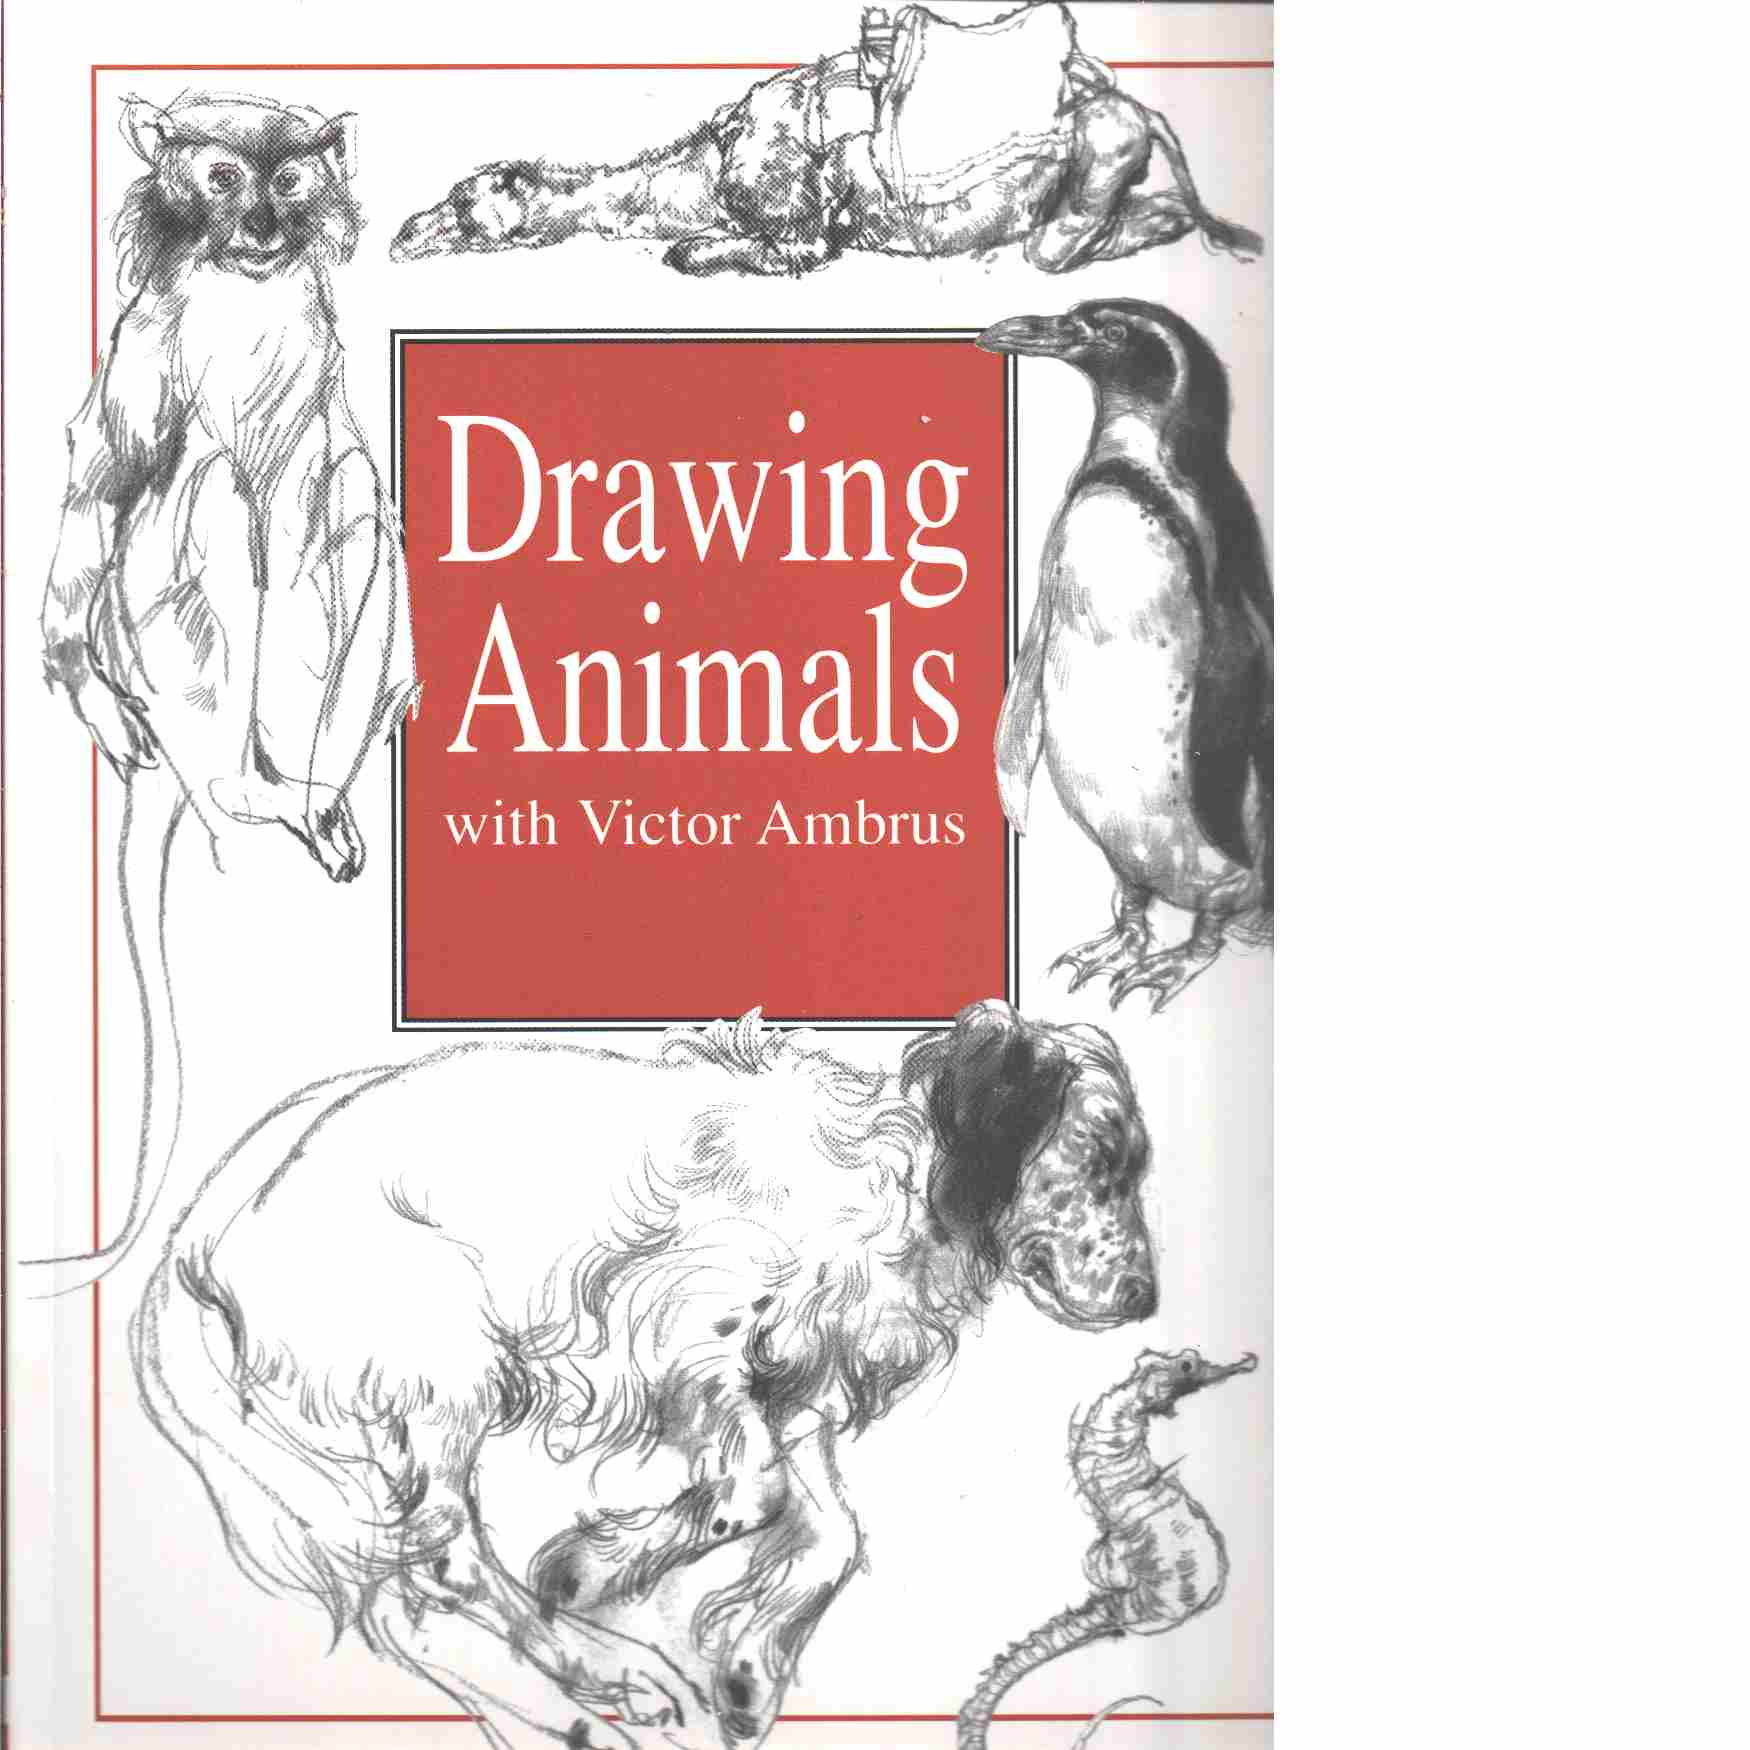 DRAWING ANIMALS - AMBRUS, VICTOR and AMBRUS, MARK